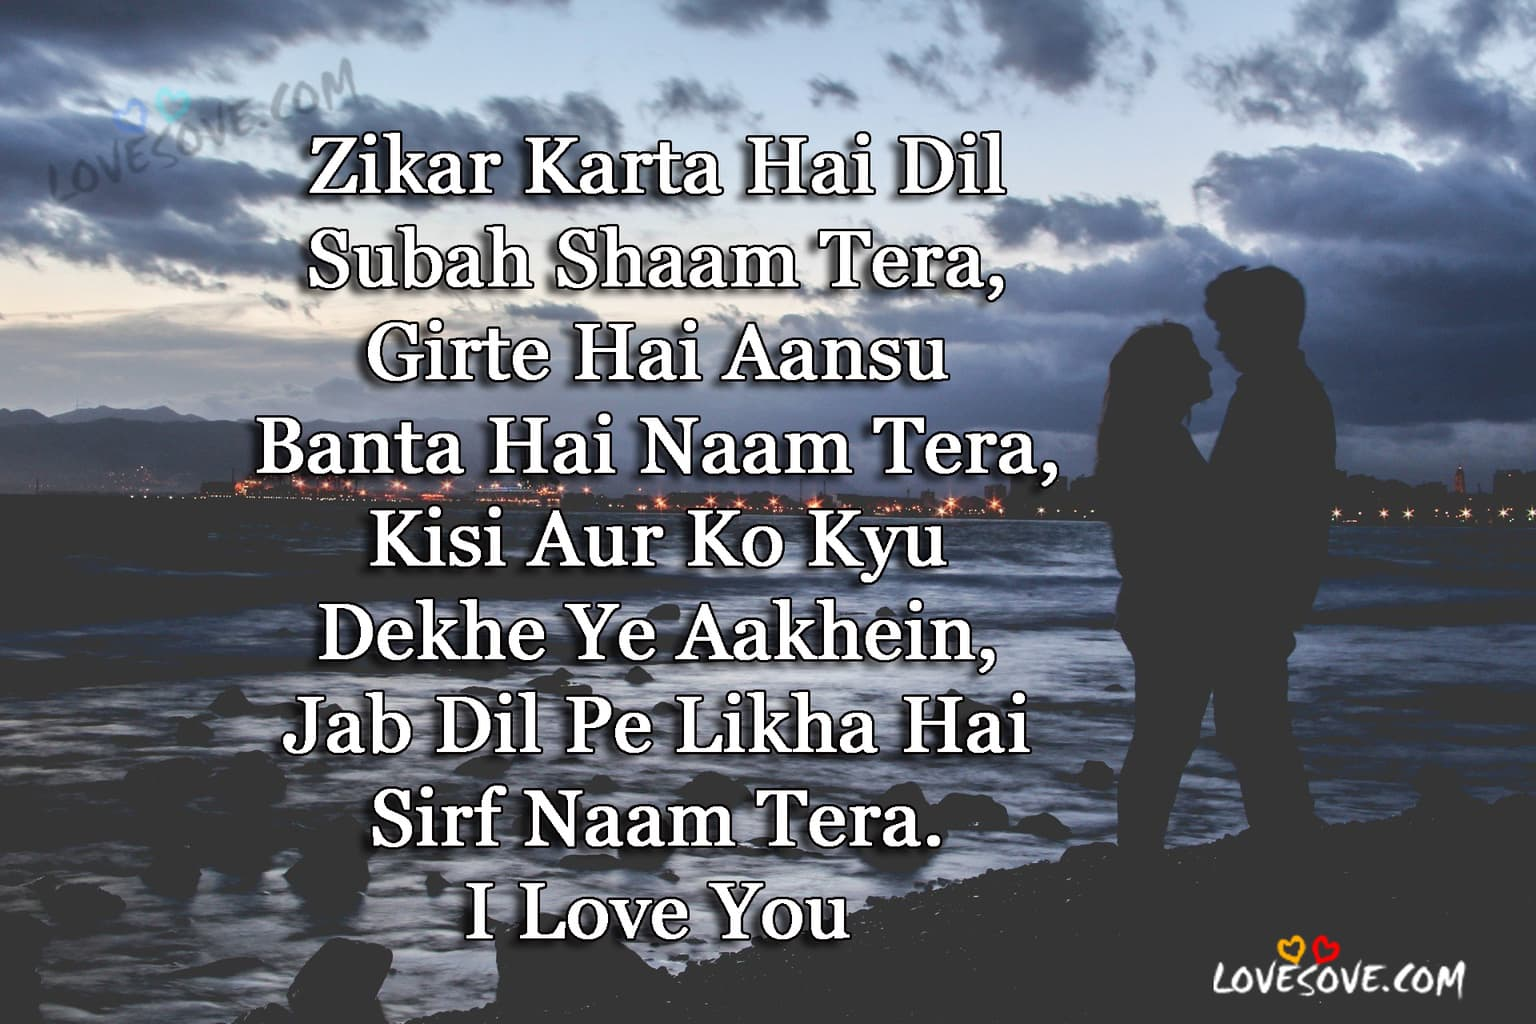 Best Hindi Love, Quotes, Status, Images, Pyar Mohabbat Shayari, Love Shayari For Facebook, Love Status For WhatsApp, Love Wallpaper For Lover